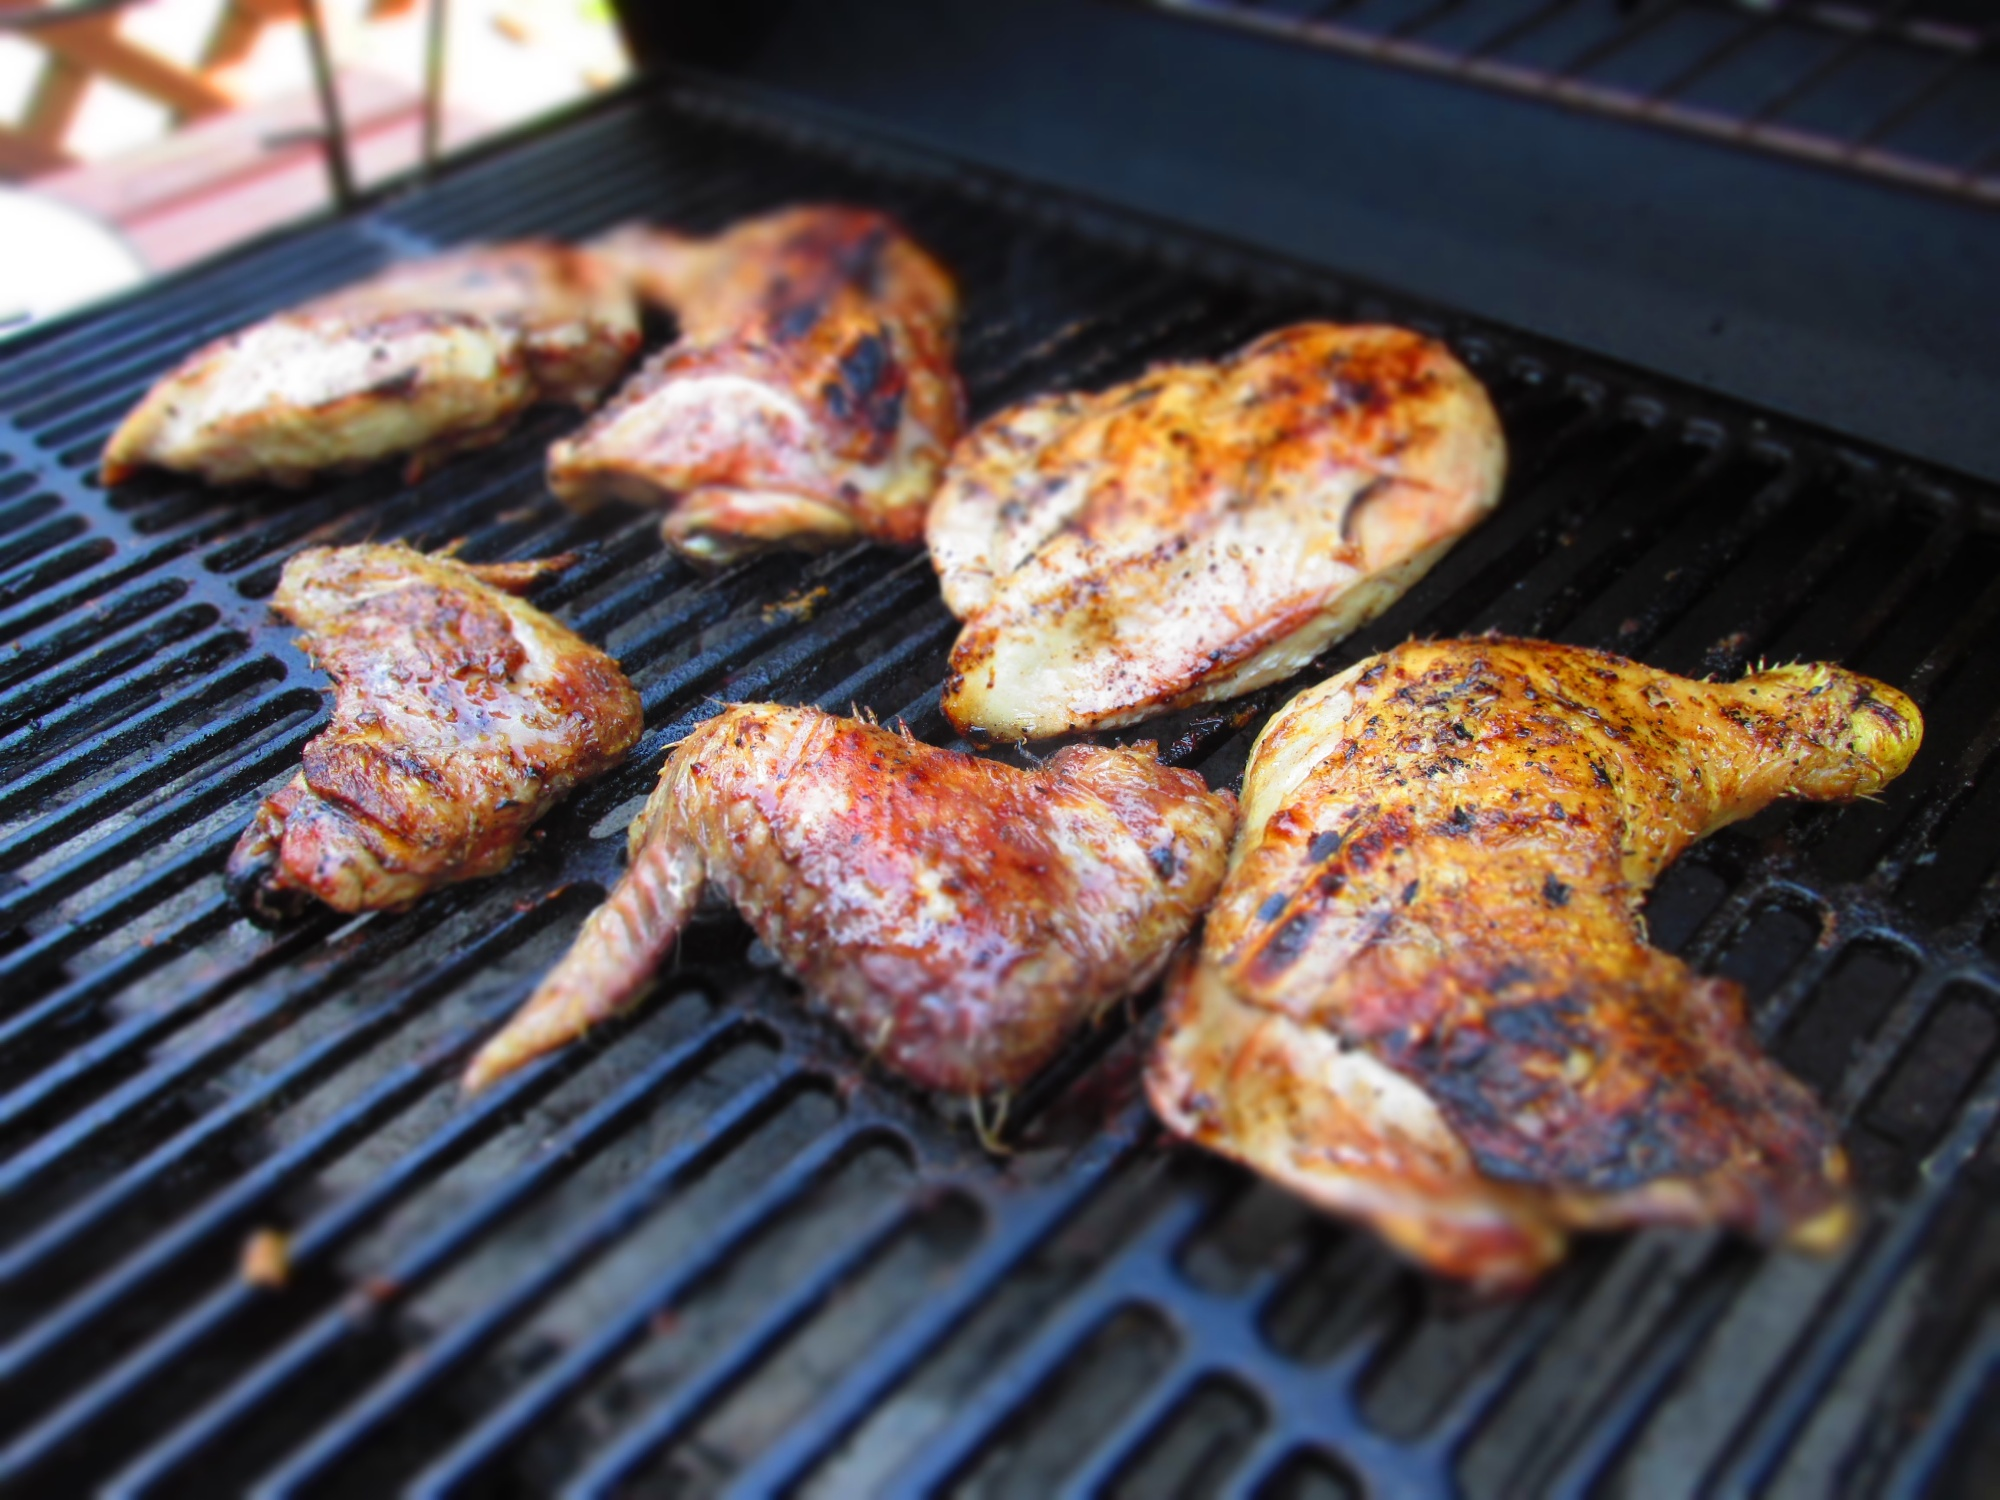 Grilled Organic Pastured Chicken